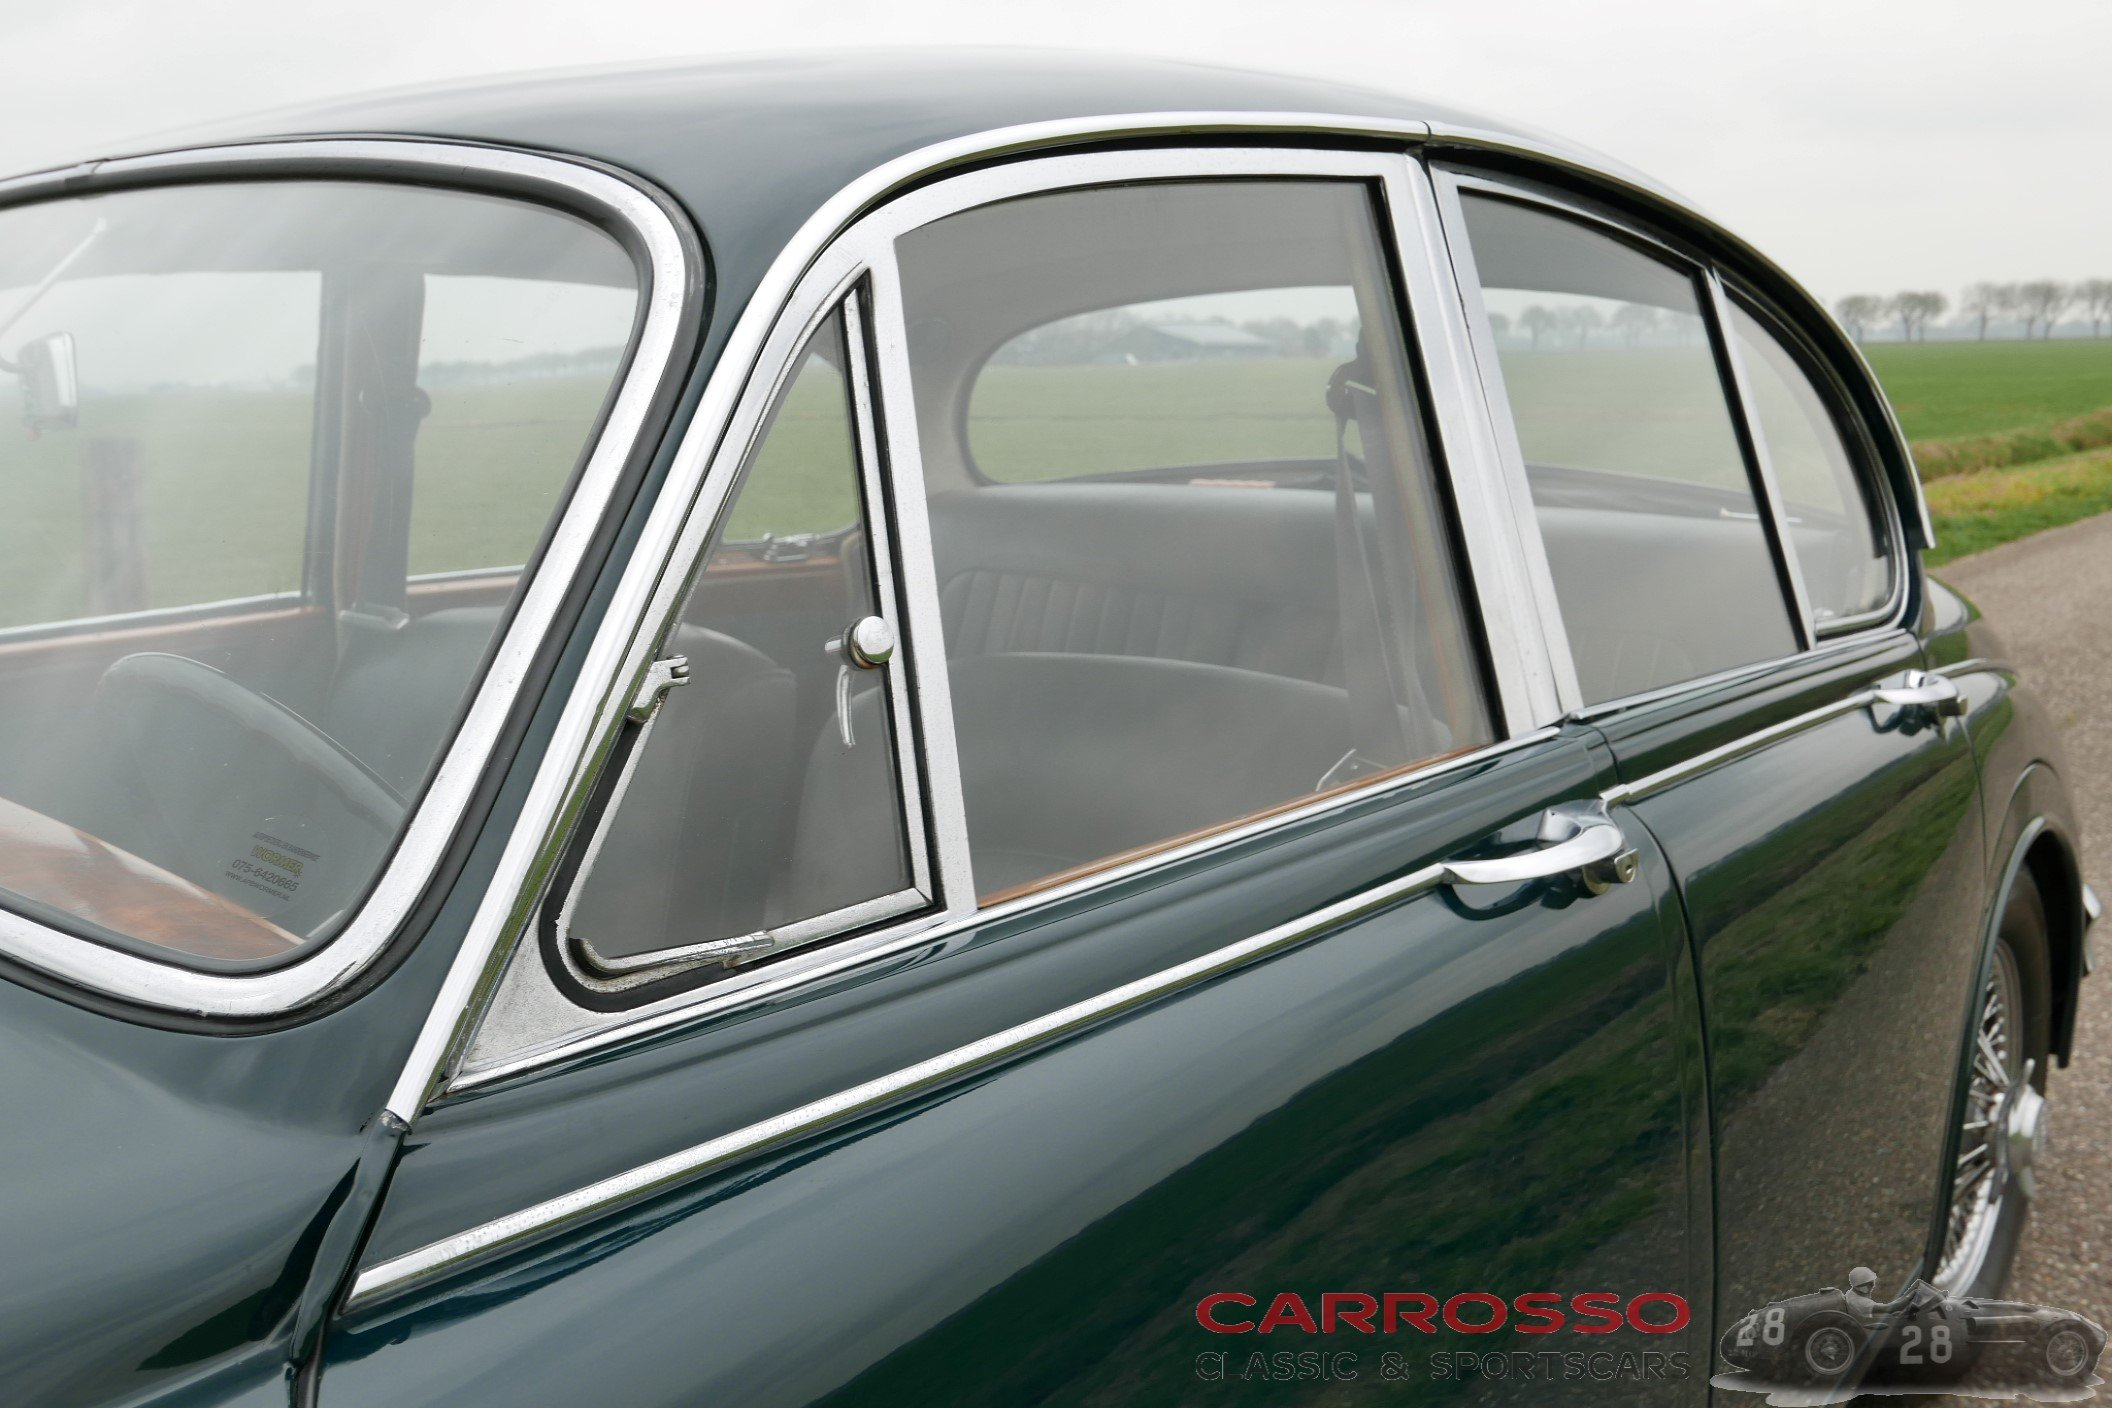 17Jaguar Mark 2 2.4 (58)